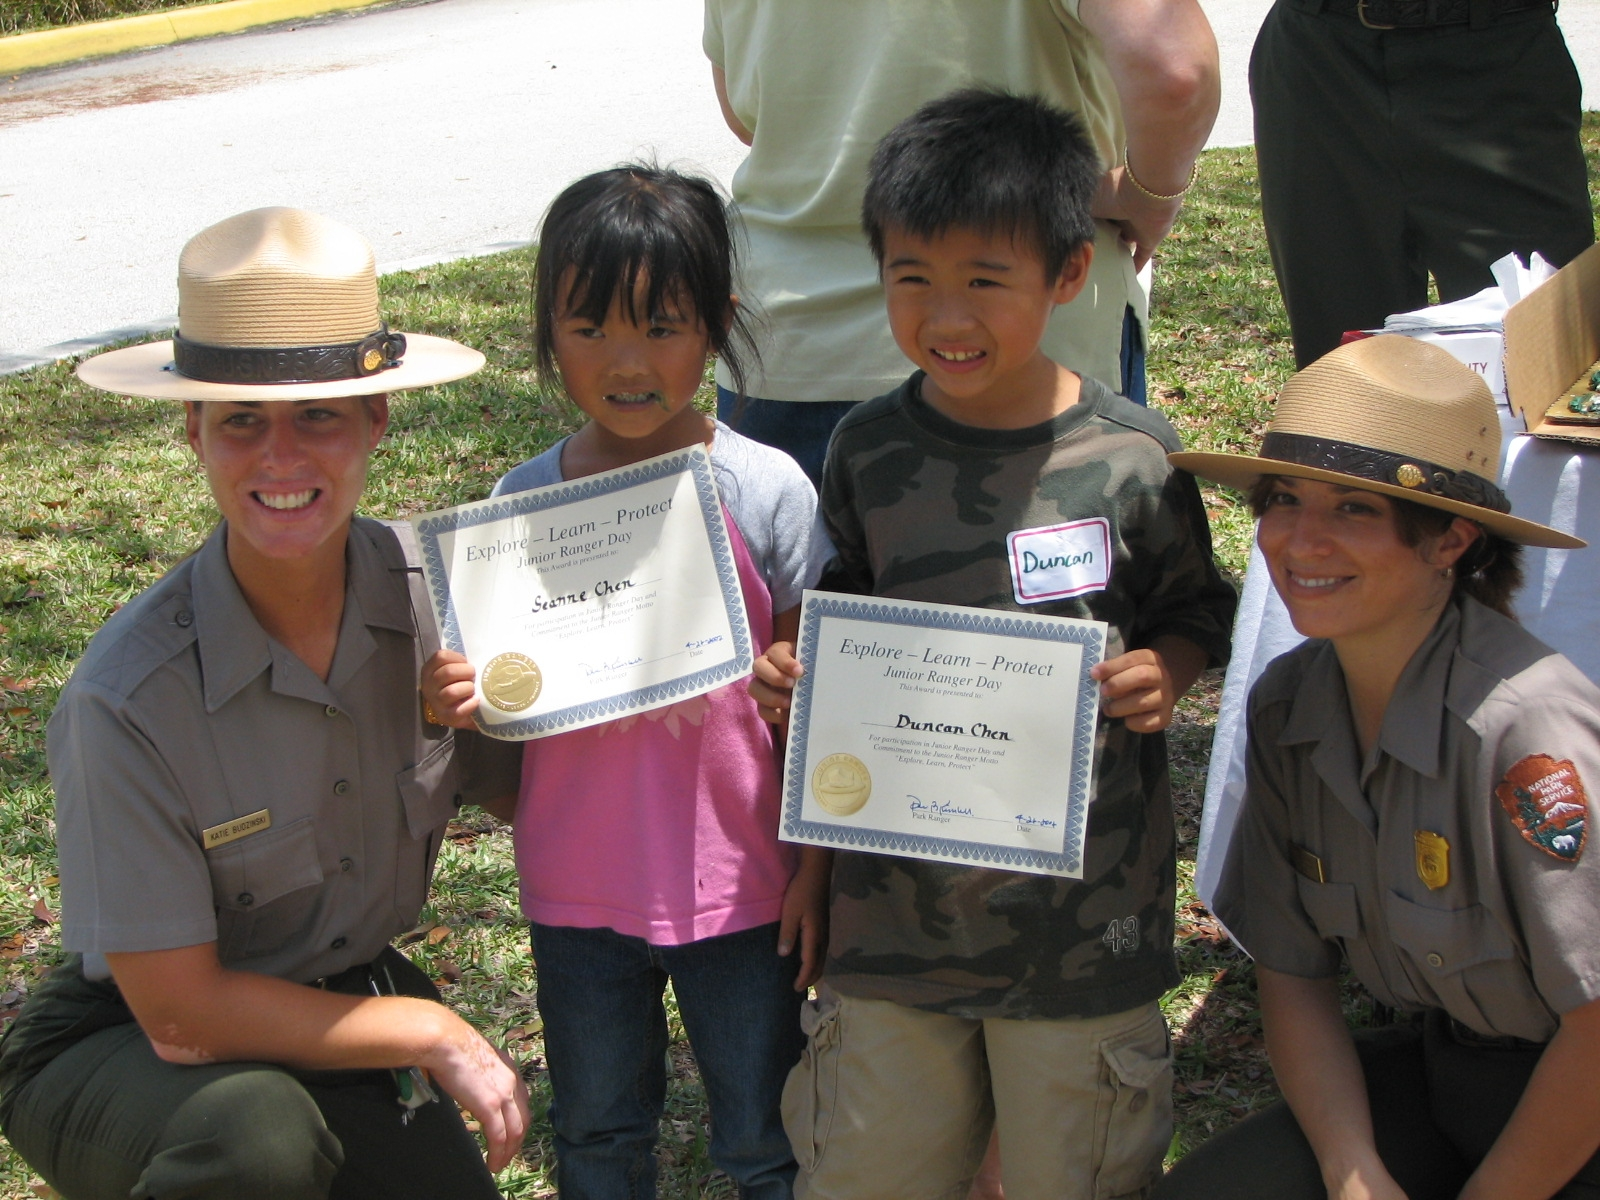 Junior Ranger Day